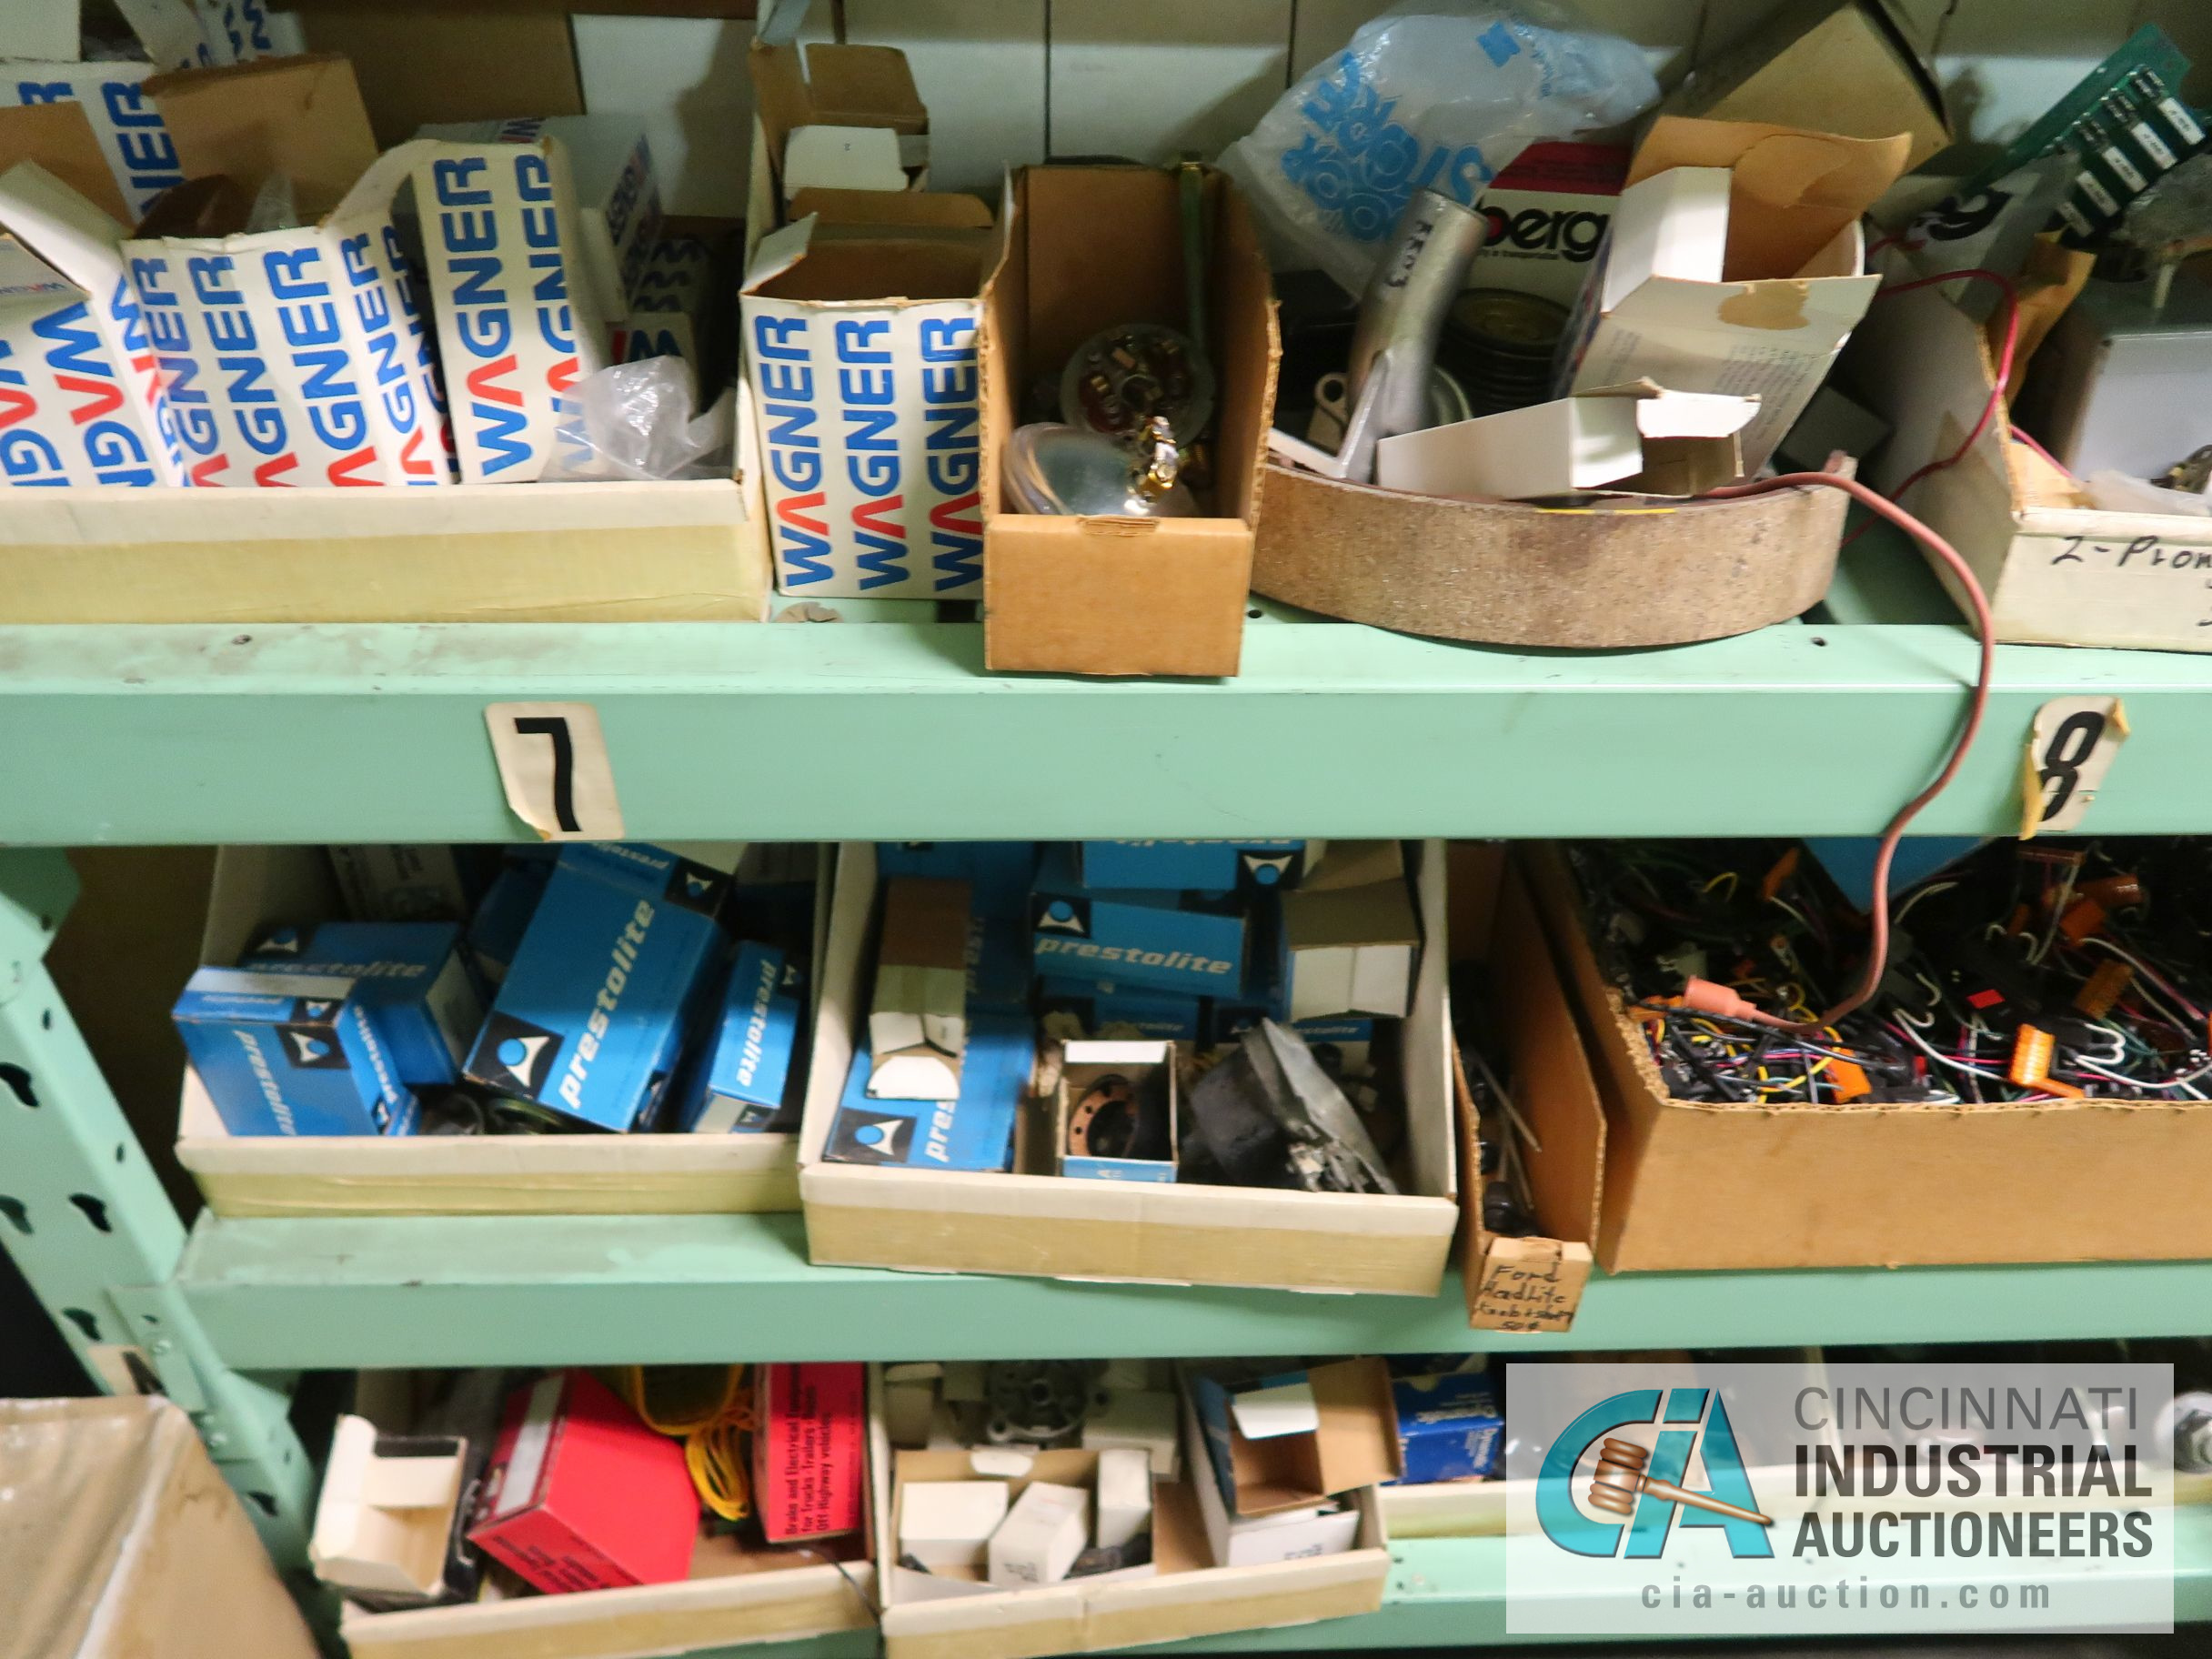 CONTENTS OF (5) RACKS INCLUDING MISCELLANEOUS AUTOMOTIVE PARTS, LIGHTS, FILTERS, ENGINE PARTS, RIMS, - Image 3 of 29